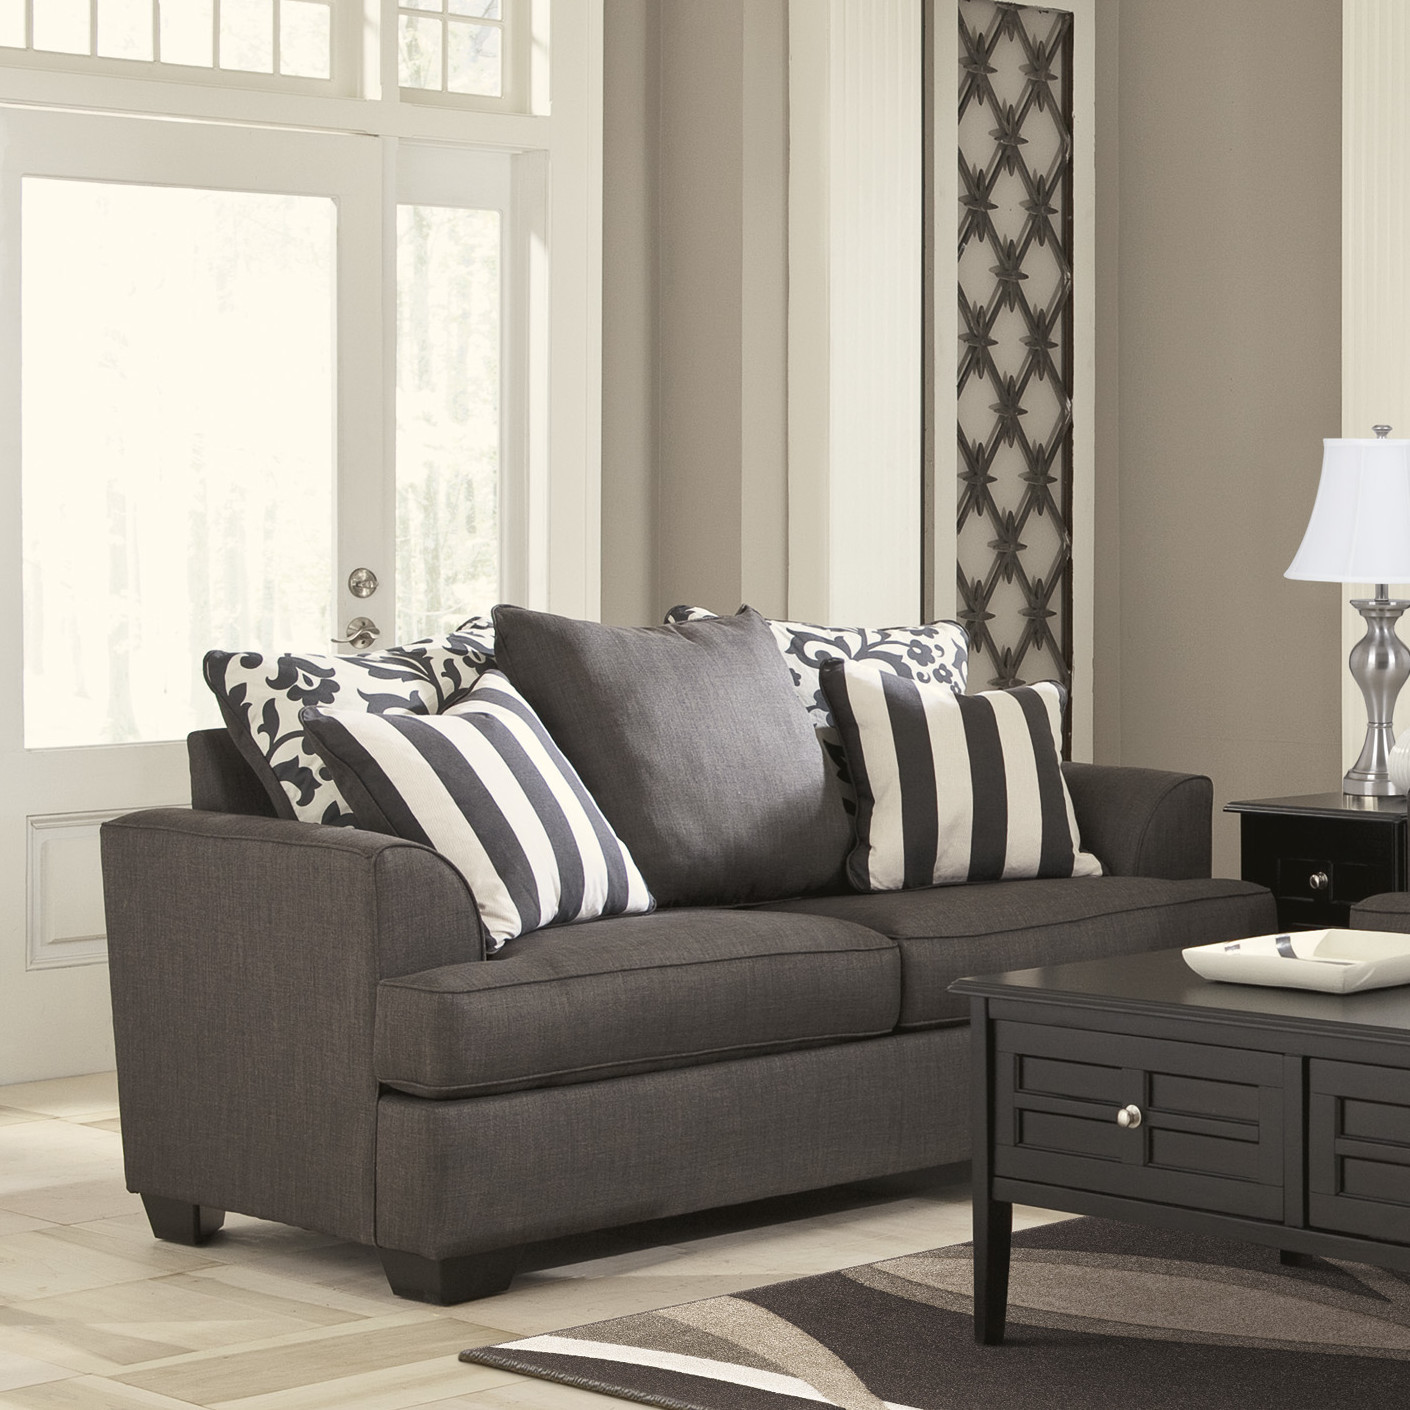 Awesome ashley furniture fresno for home furniture with ashley furniture fresno ca